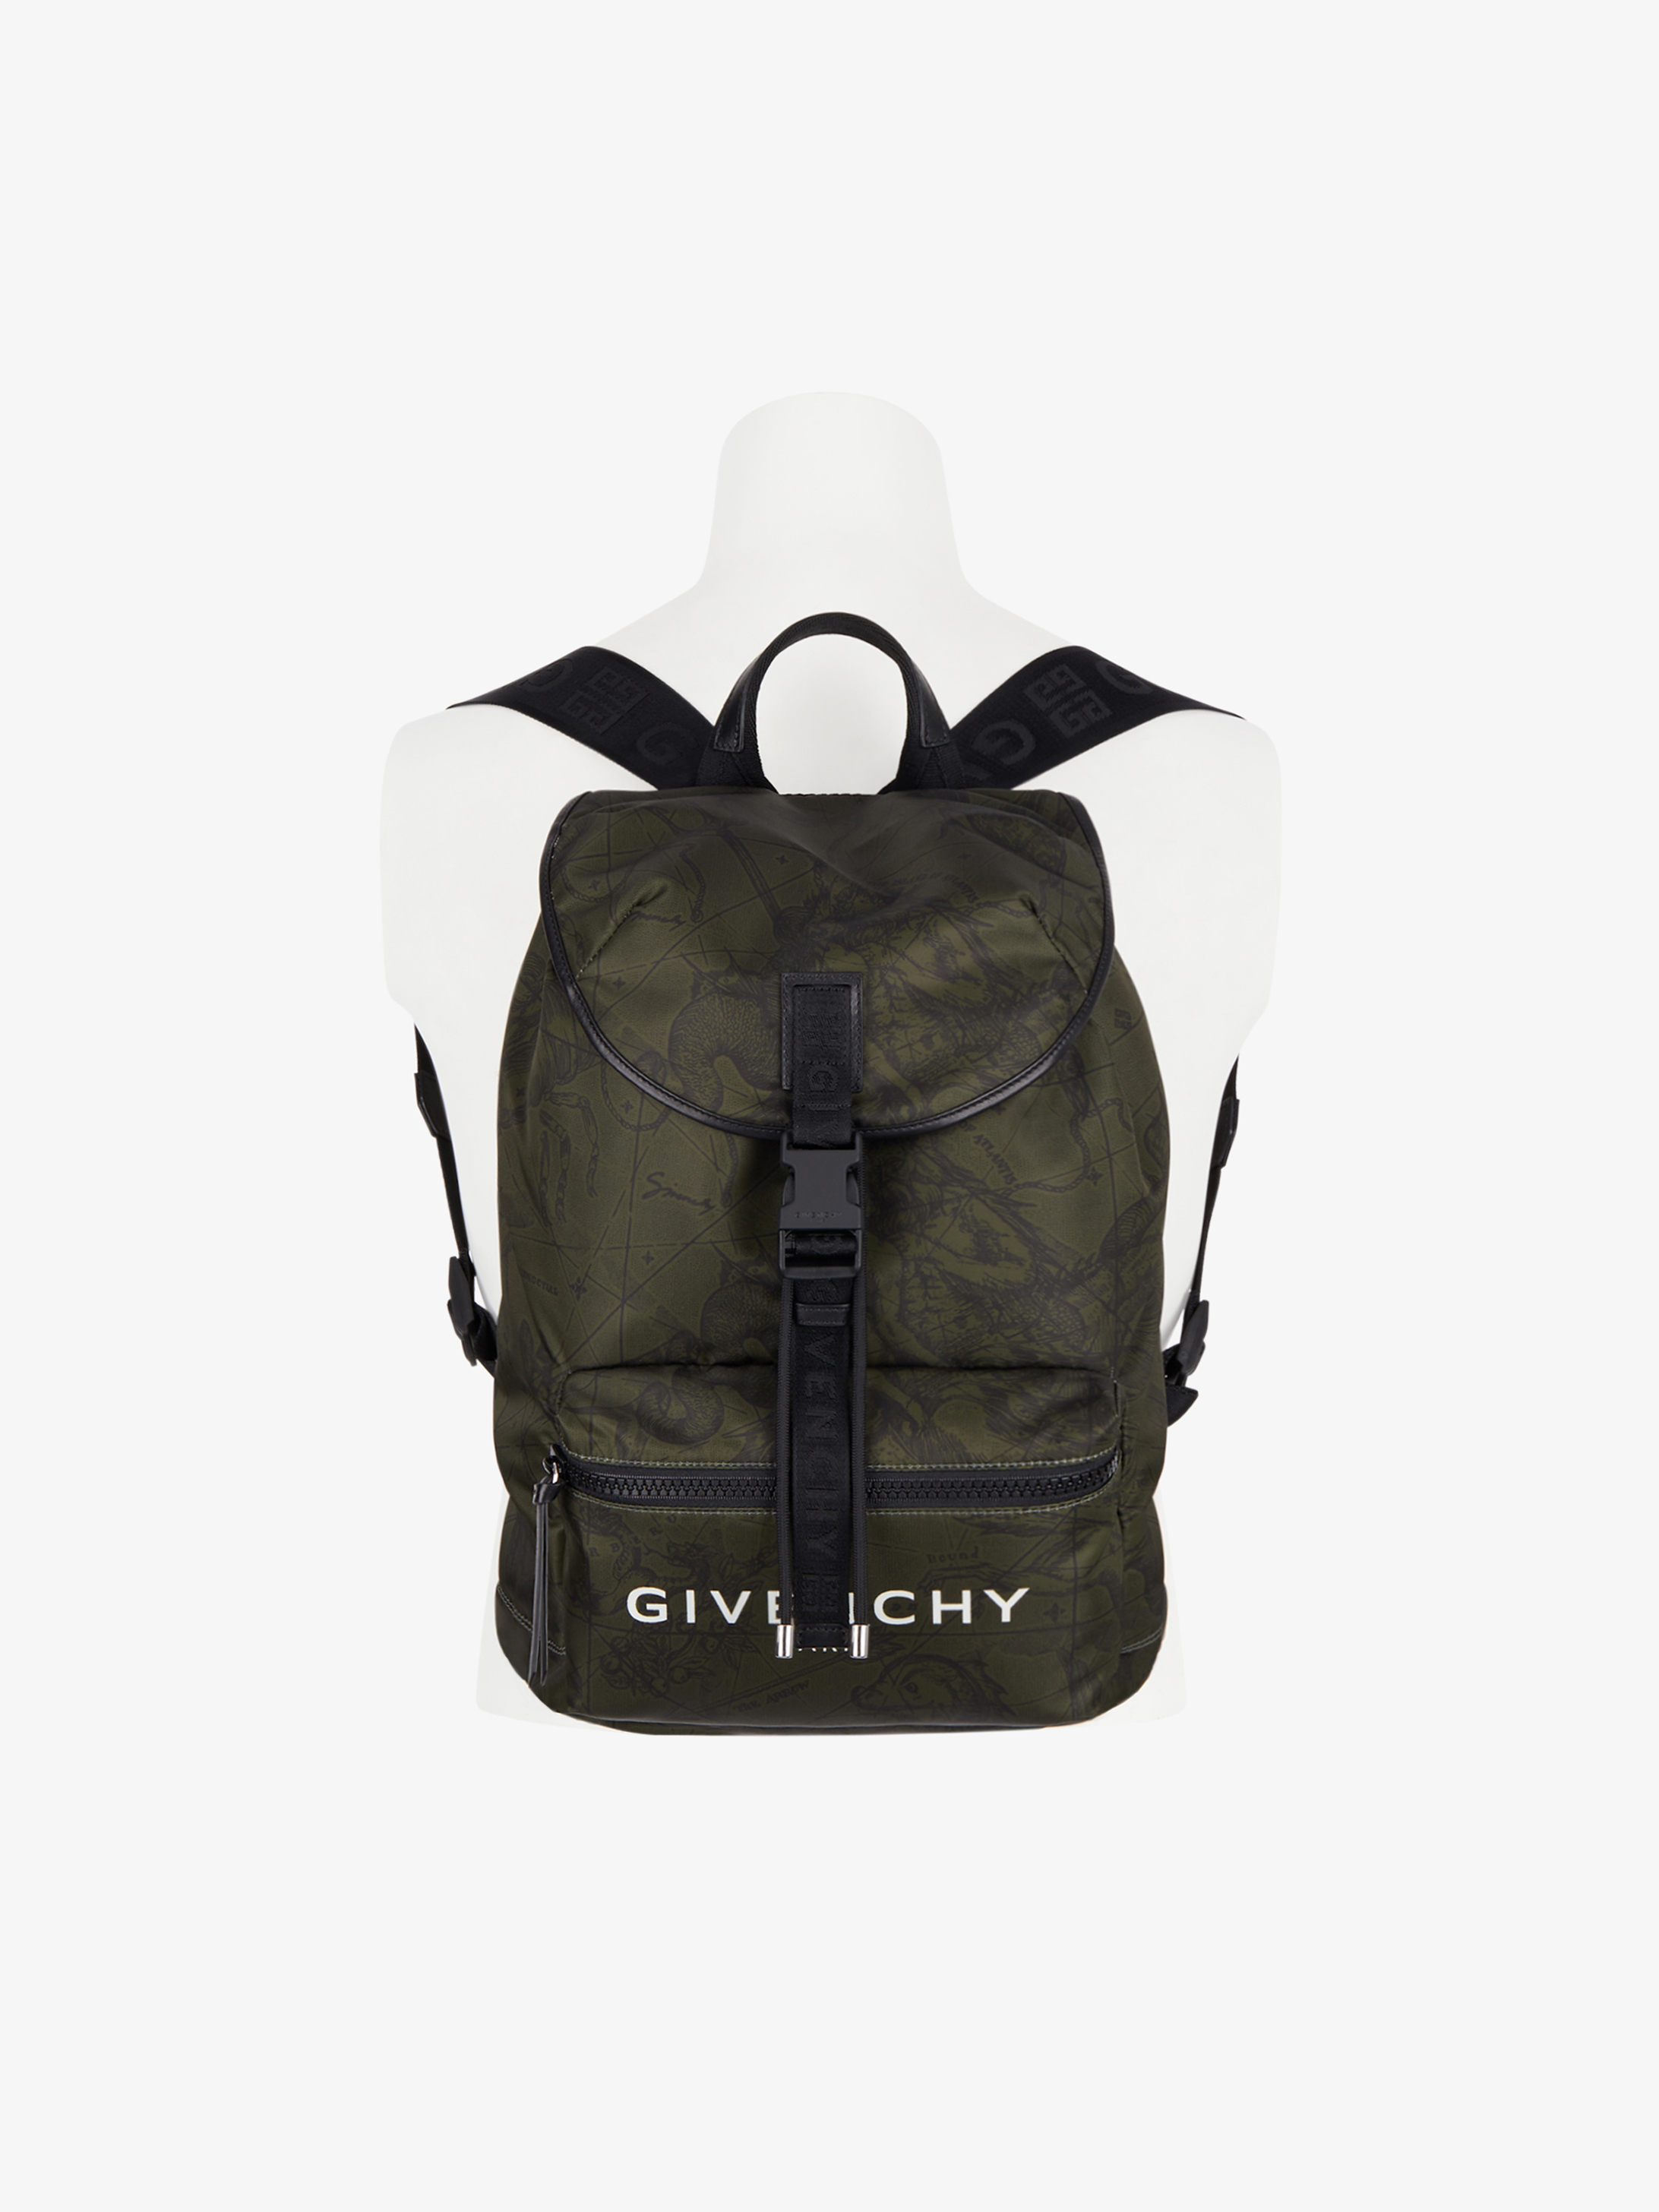 GIVENCHY backpack in astral printed nylon